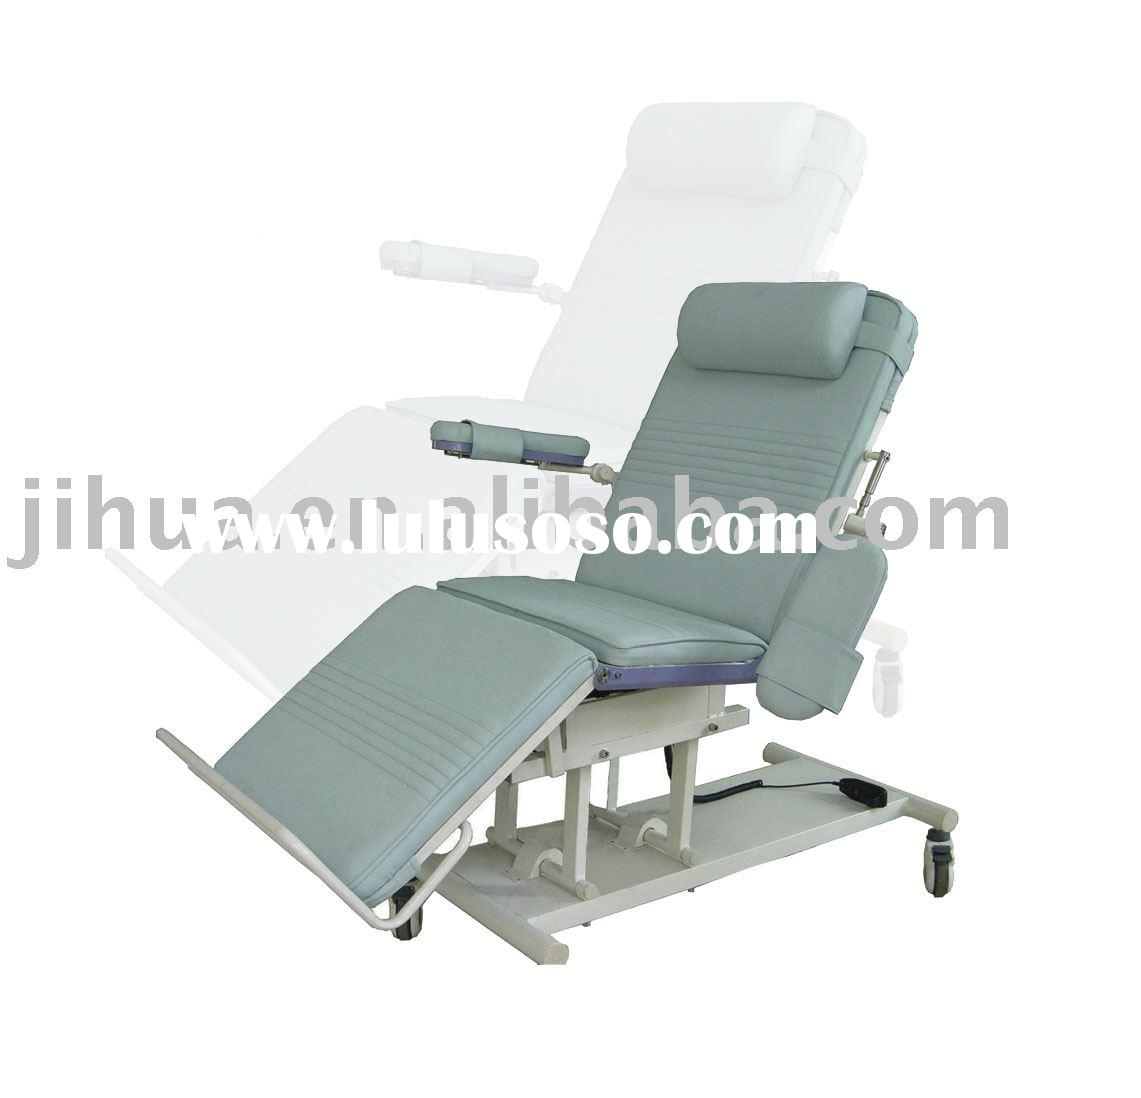 used dialysis chairs for sale white gaming chair hemodialysis machines patients